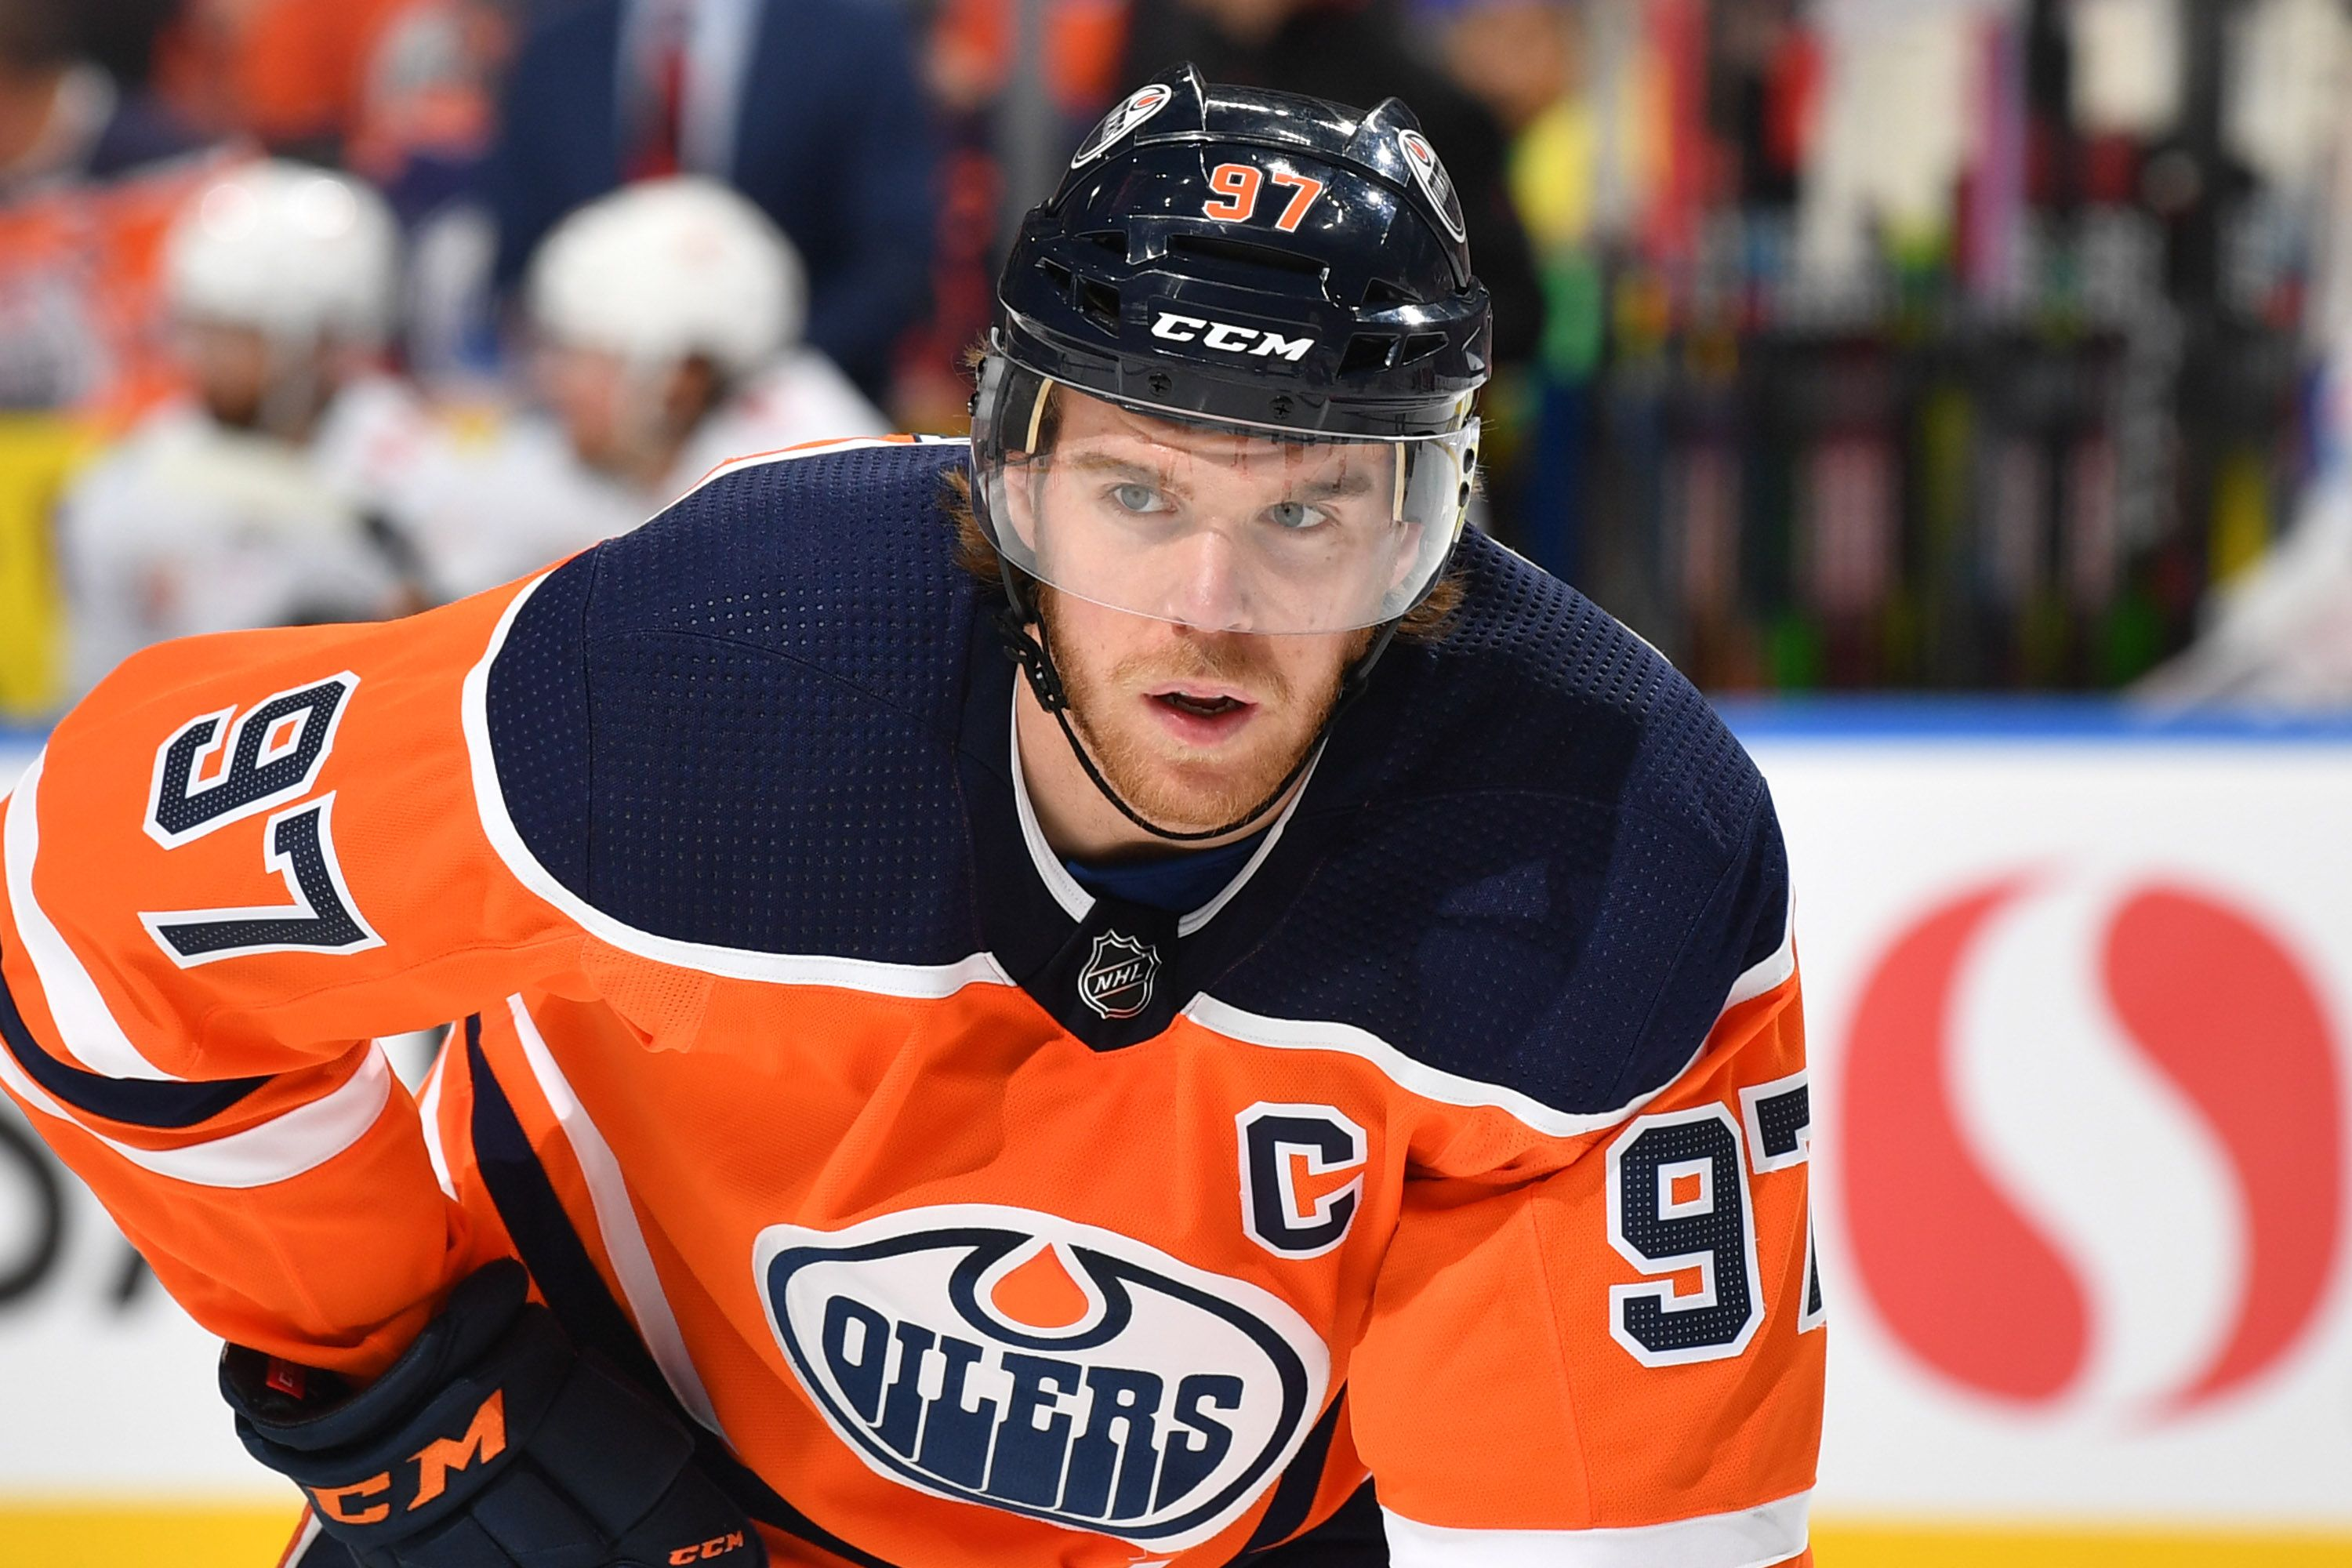 Connor McDavidof the Edmonton Oilers during a game against the Calgary Flames on January 29, 2020, at Rogers Place in Edmonton, Alberta, Canada | Photo:Andy Devlin/NHLI/Getty Images